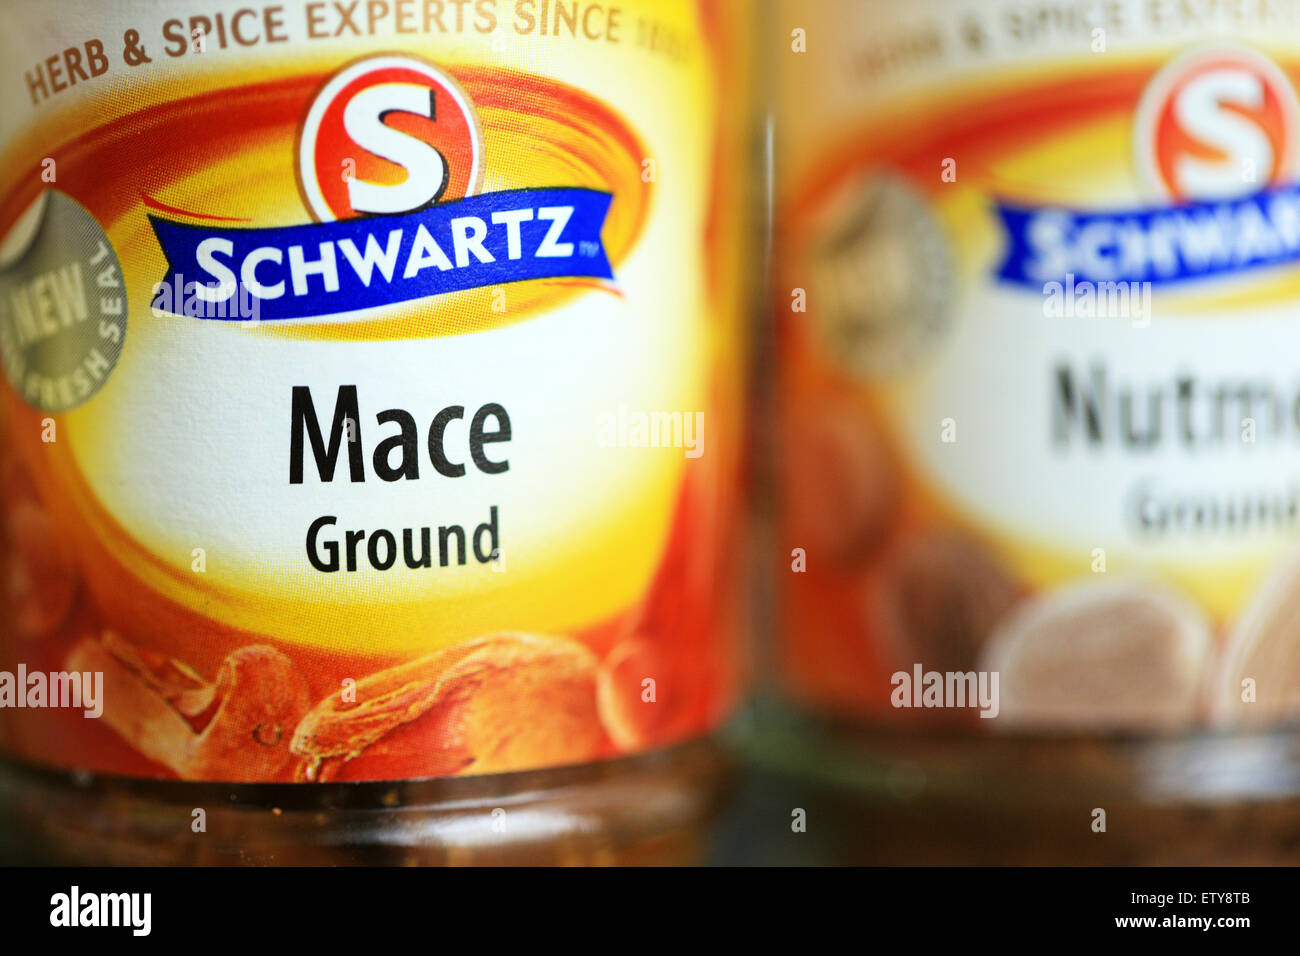 Schwartz jars of Ground Mace & Nutmeg which come from the